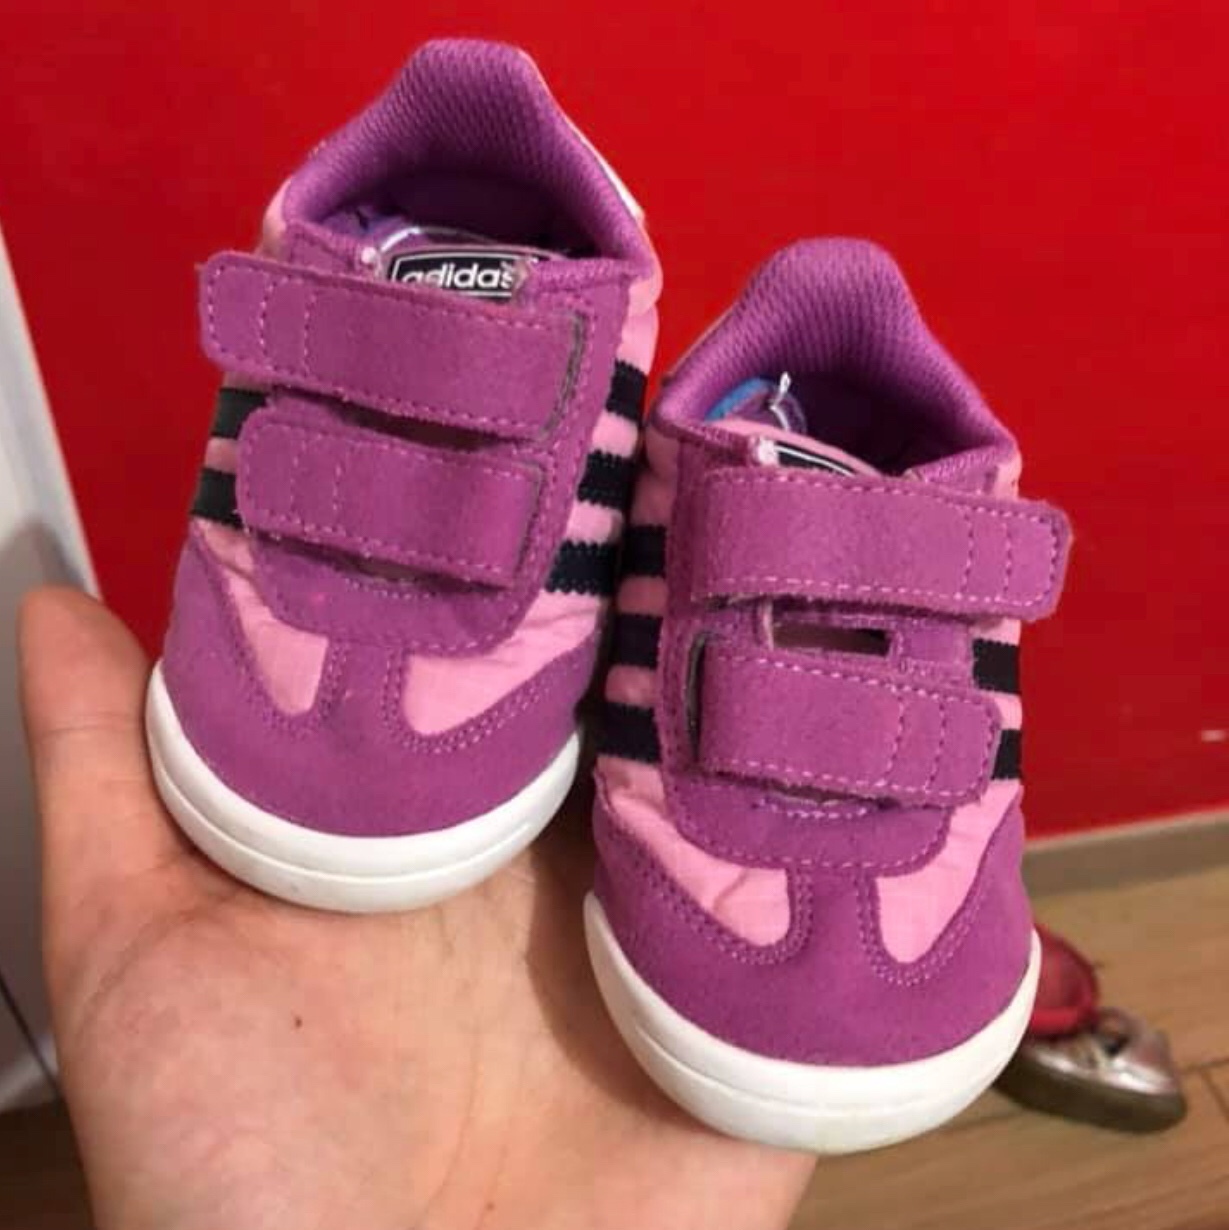 2adidas dragon bimba